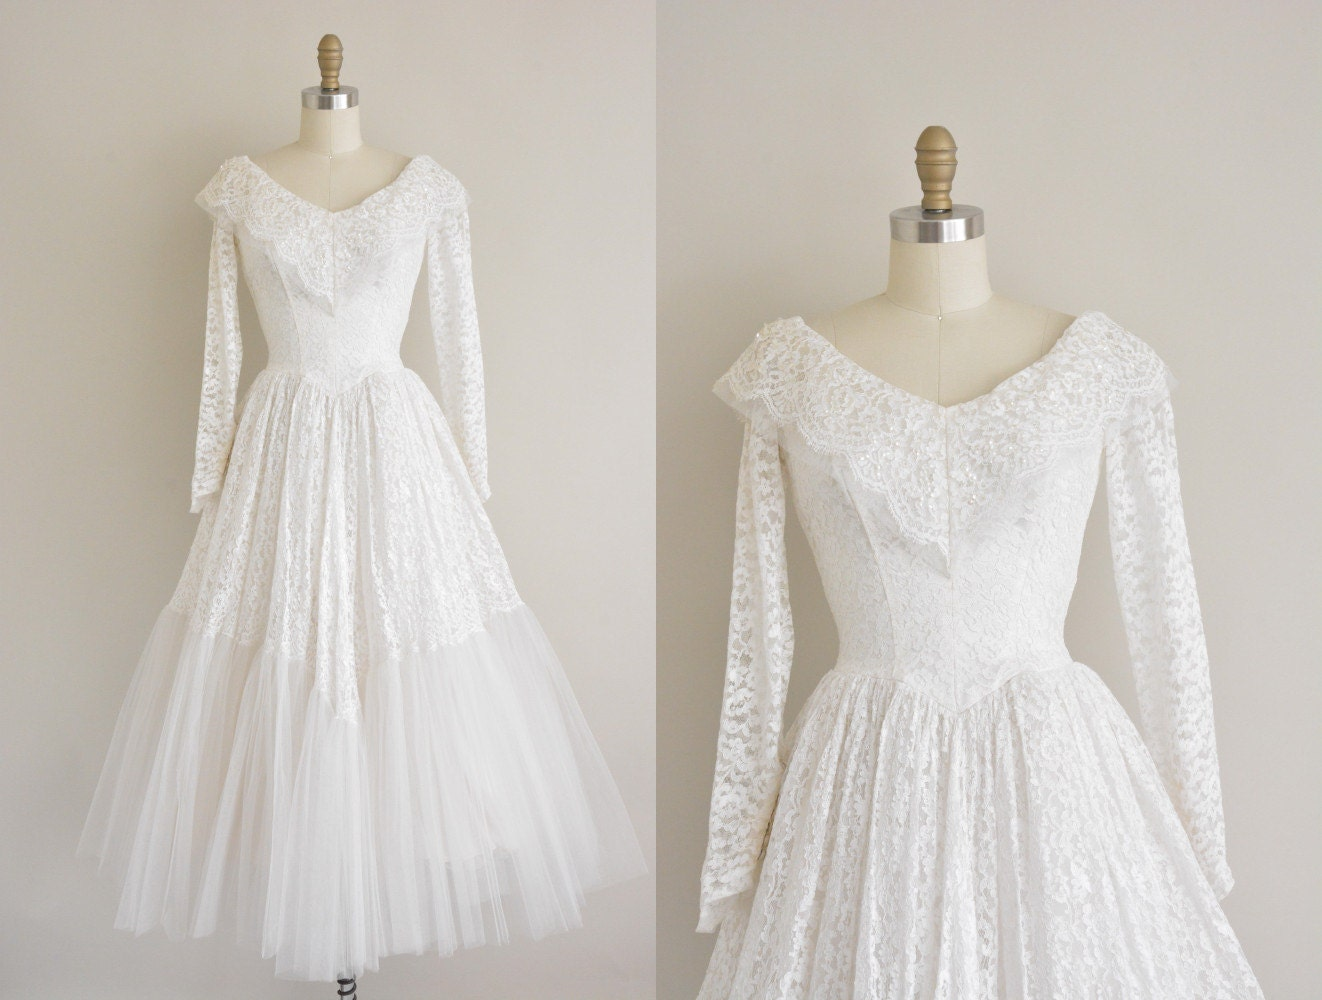 vintage white lace long sleeve winter wedding dress 1950s